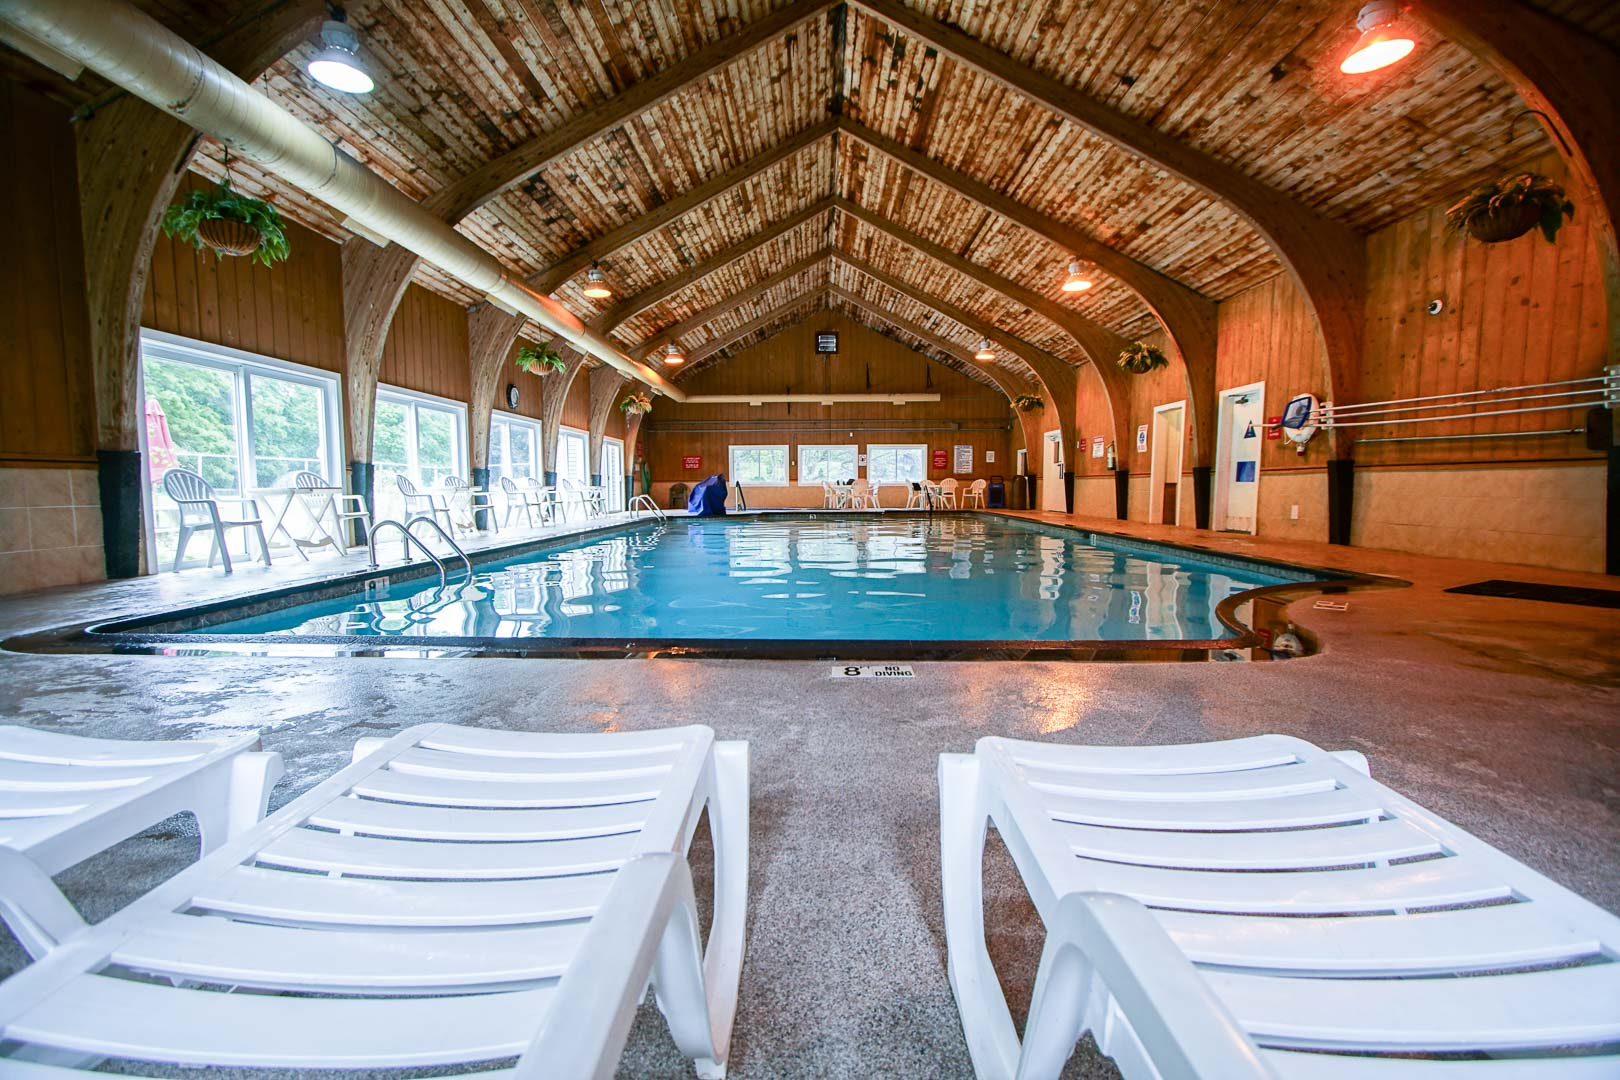 An all year round indoor swimming pool at VRI's Brewster Green Resort in Massachusetts.